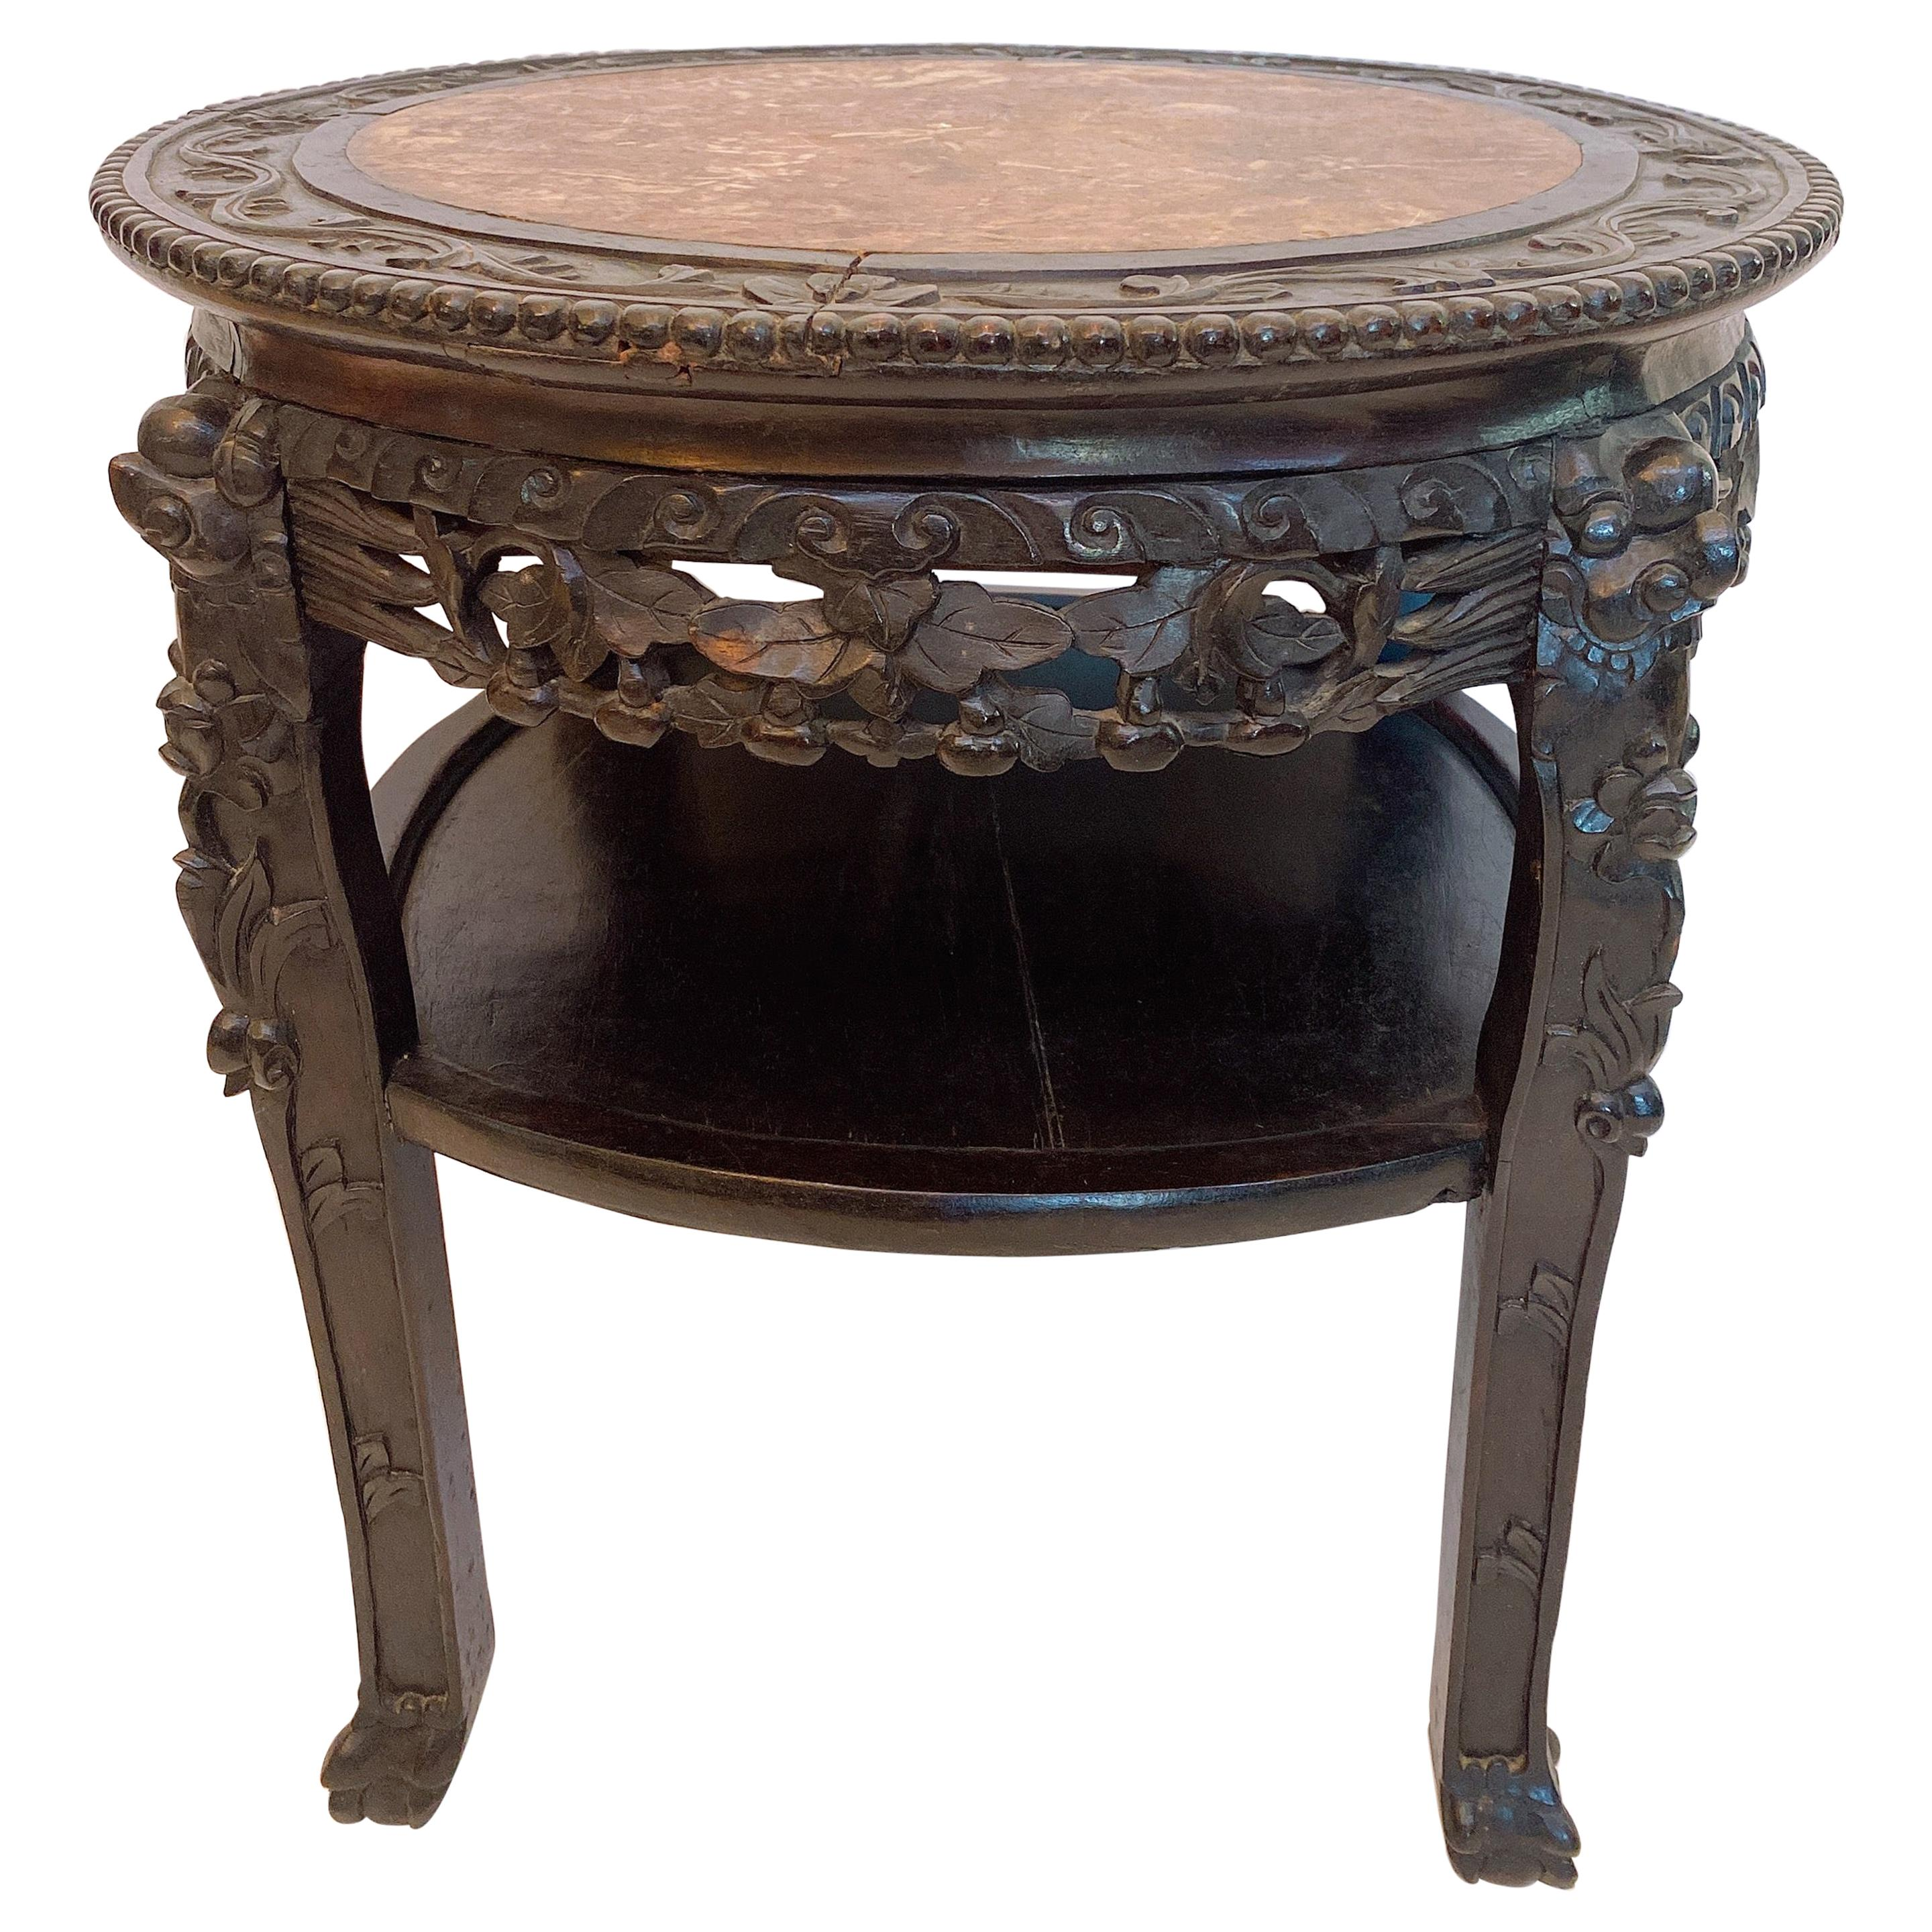 19th Century 23.5'' Chinese Carved Rosewood Flower Stands Marble-Top Insert